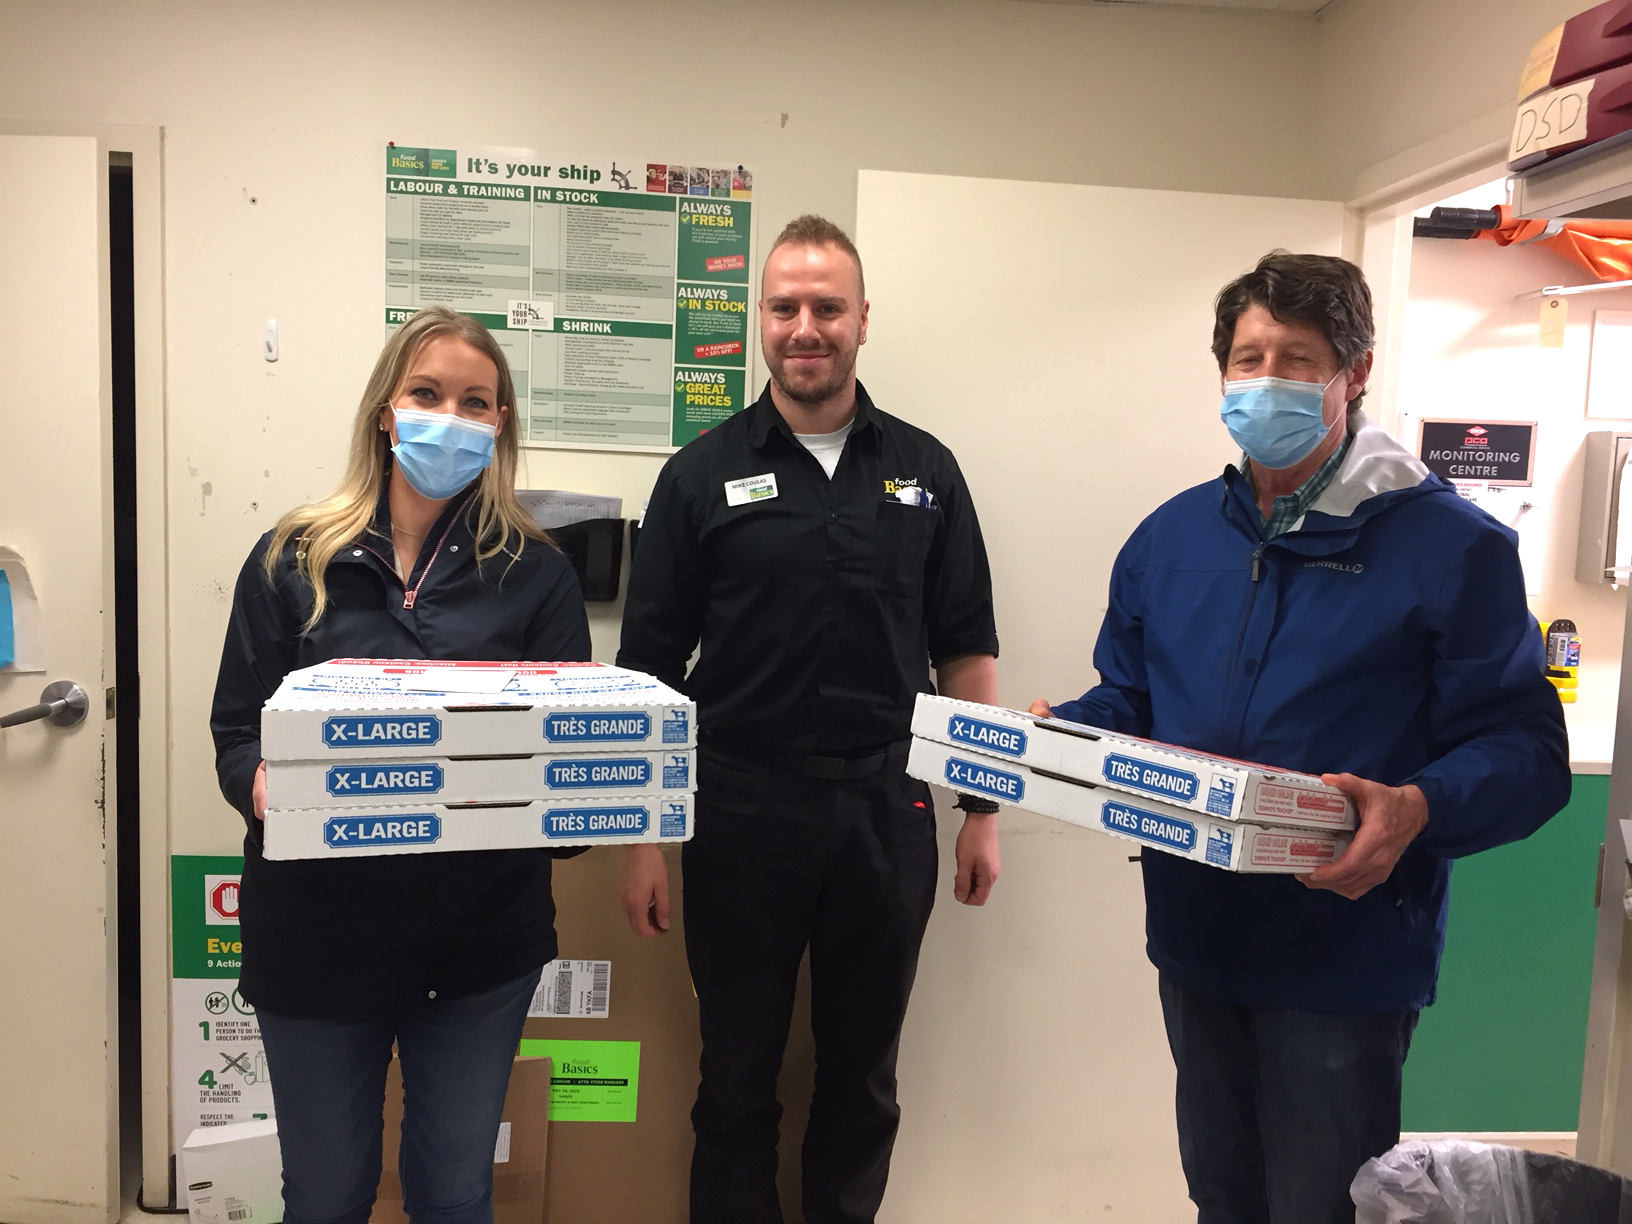 Team members with boxes of pizza donated from Domino's Pizza.